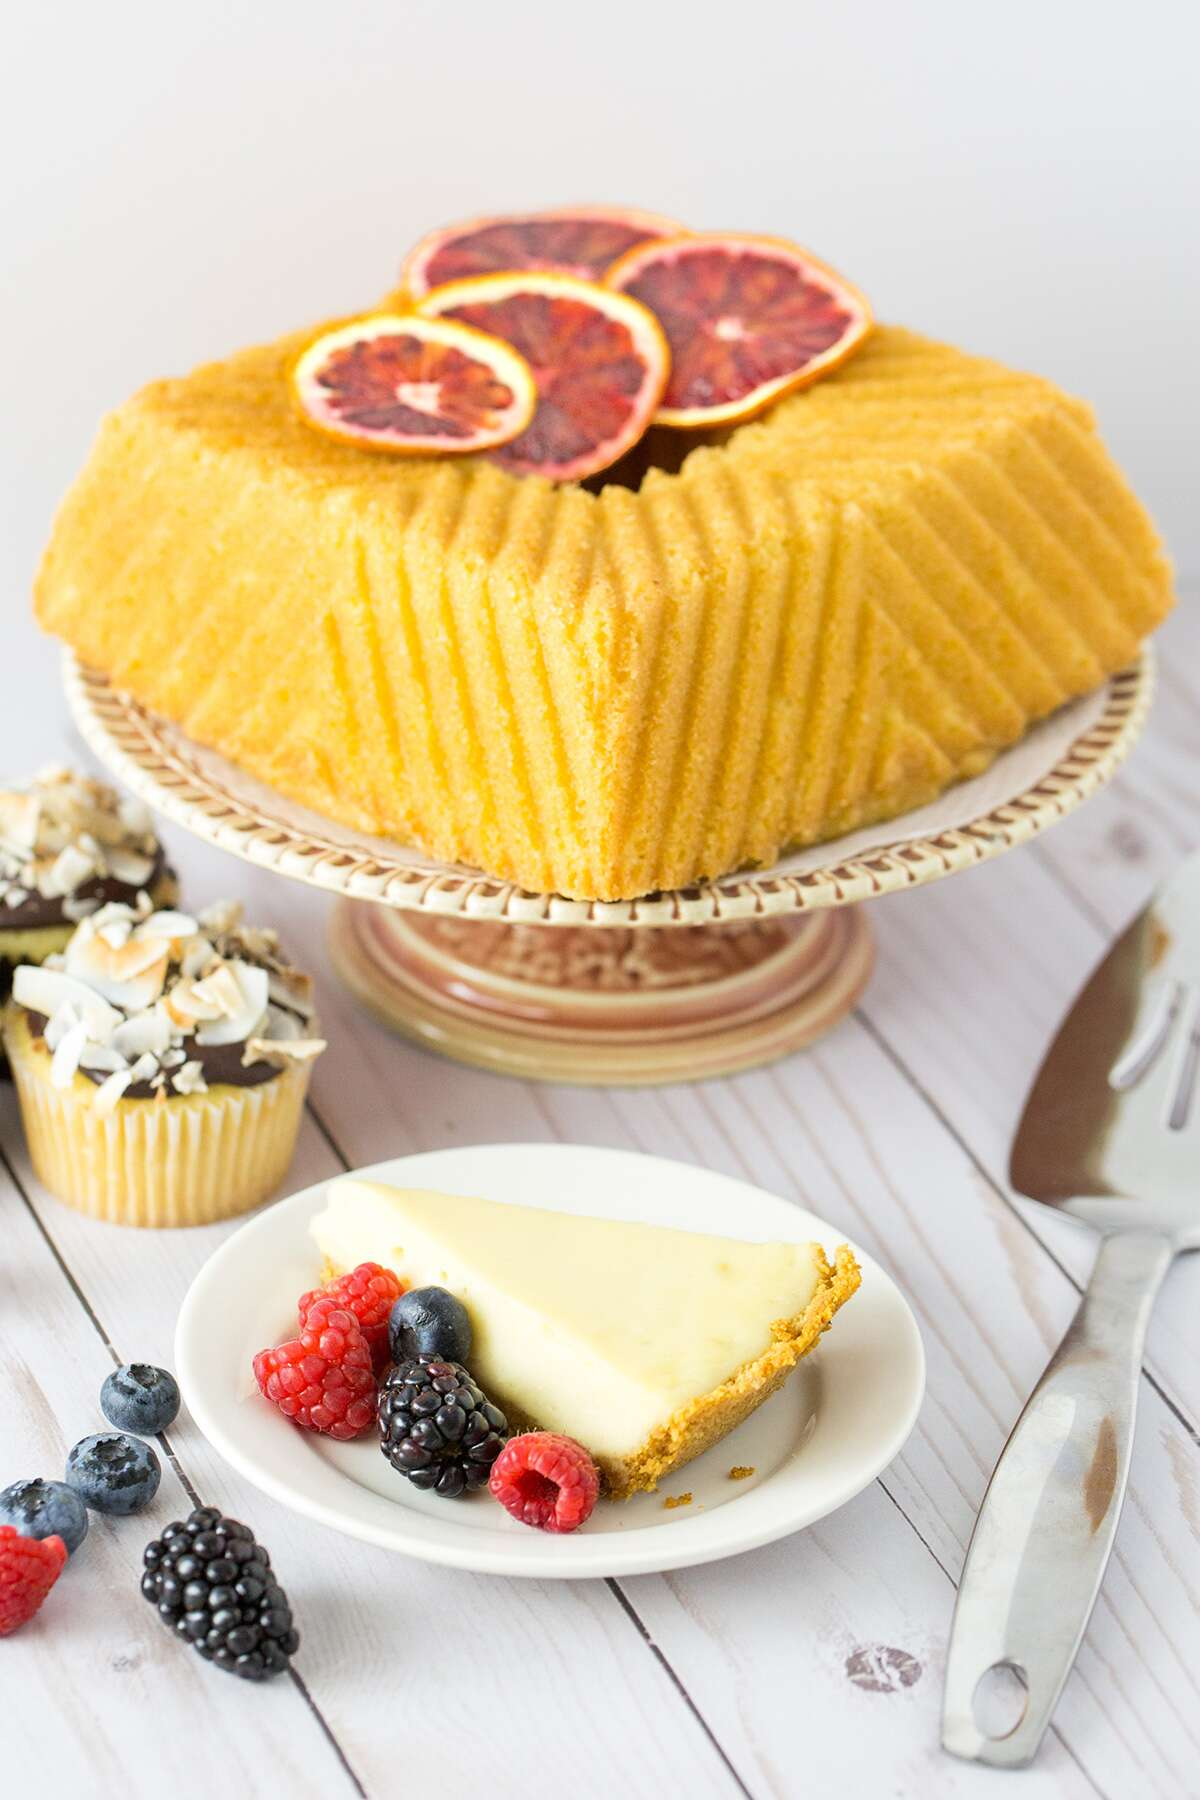 Dairy-free cake via @kingarthurflour